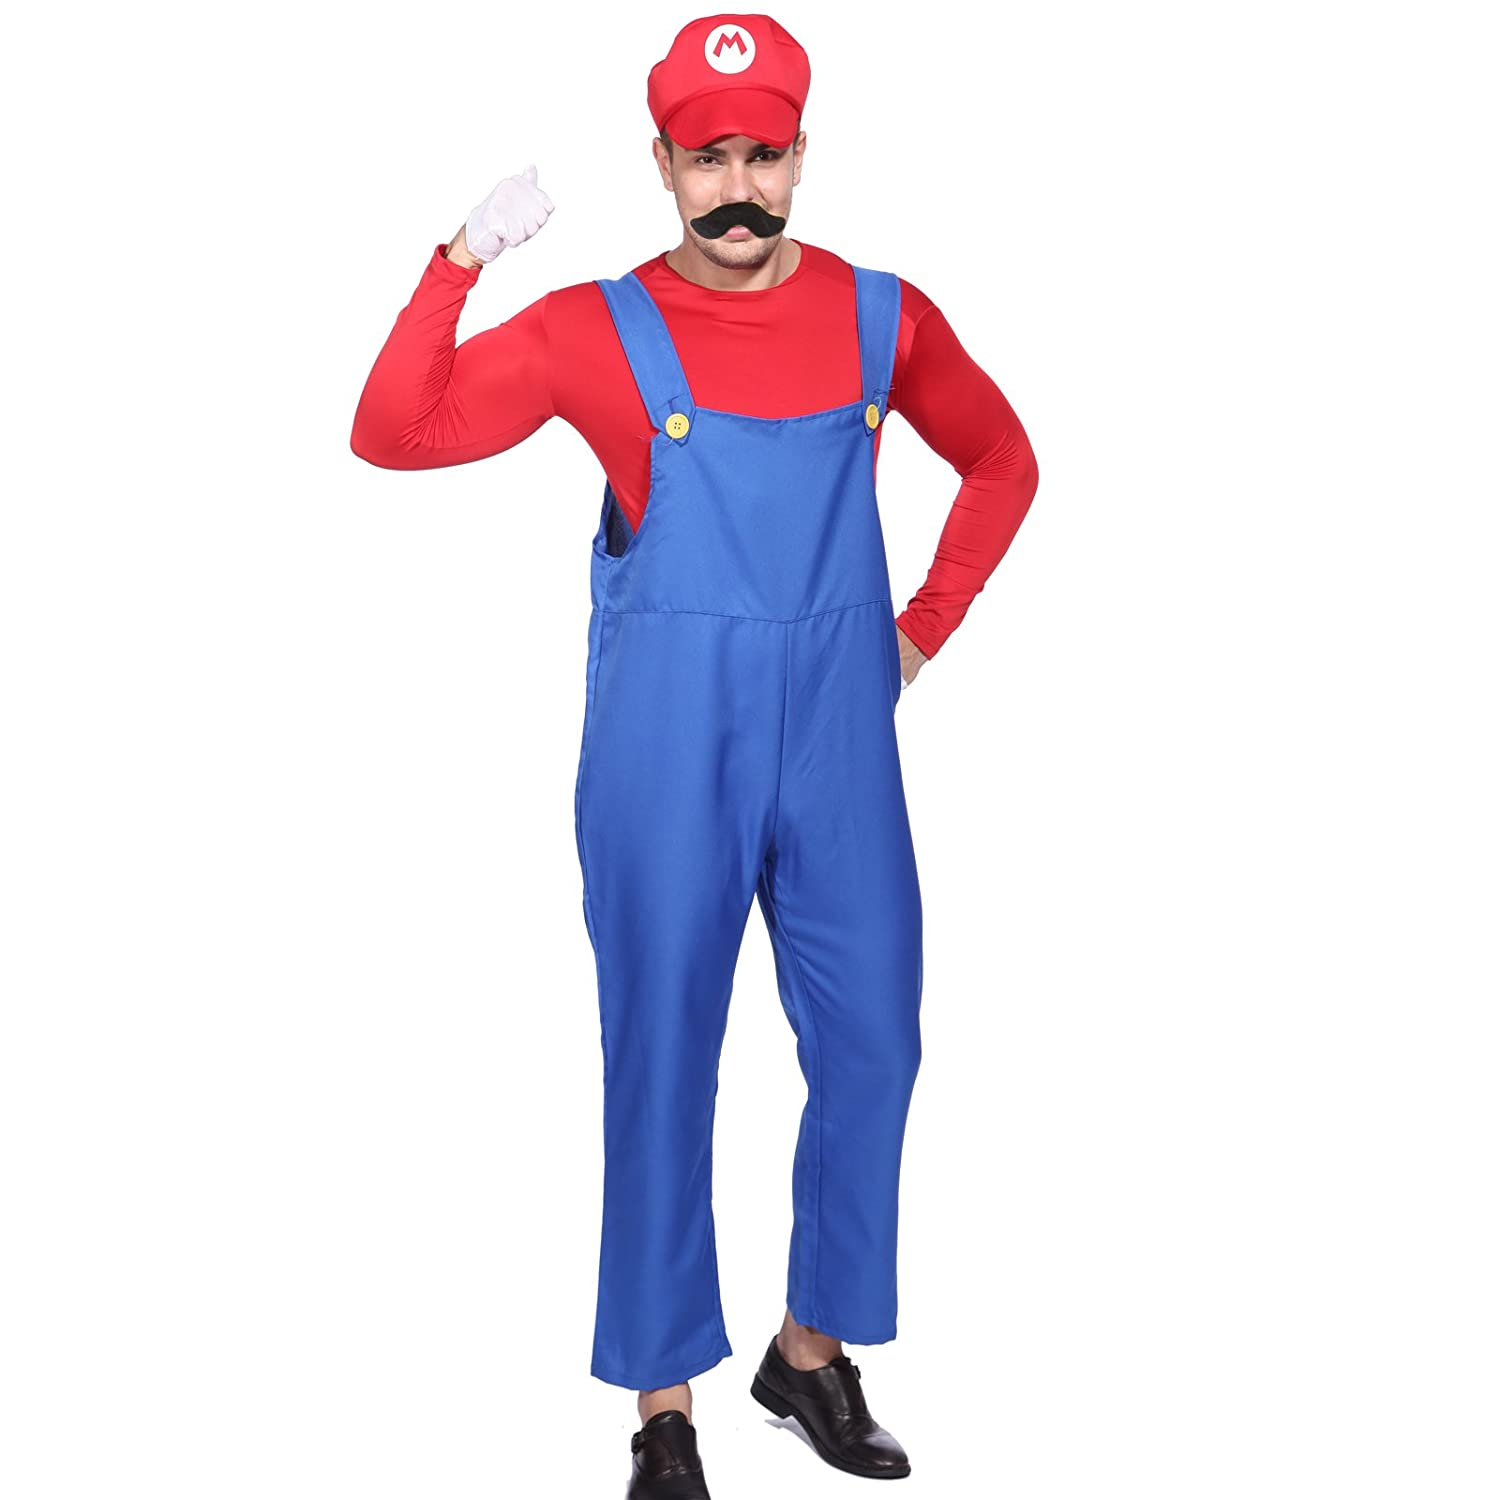 CLE DE TOUS Disfraz de Mario Bros para Adulto hombre Cosplay Dress